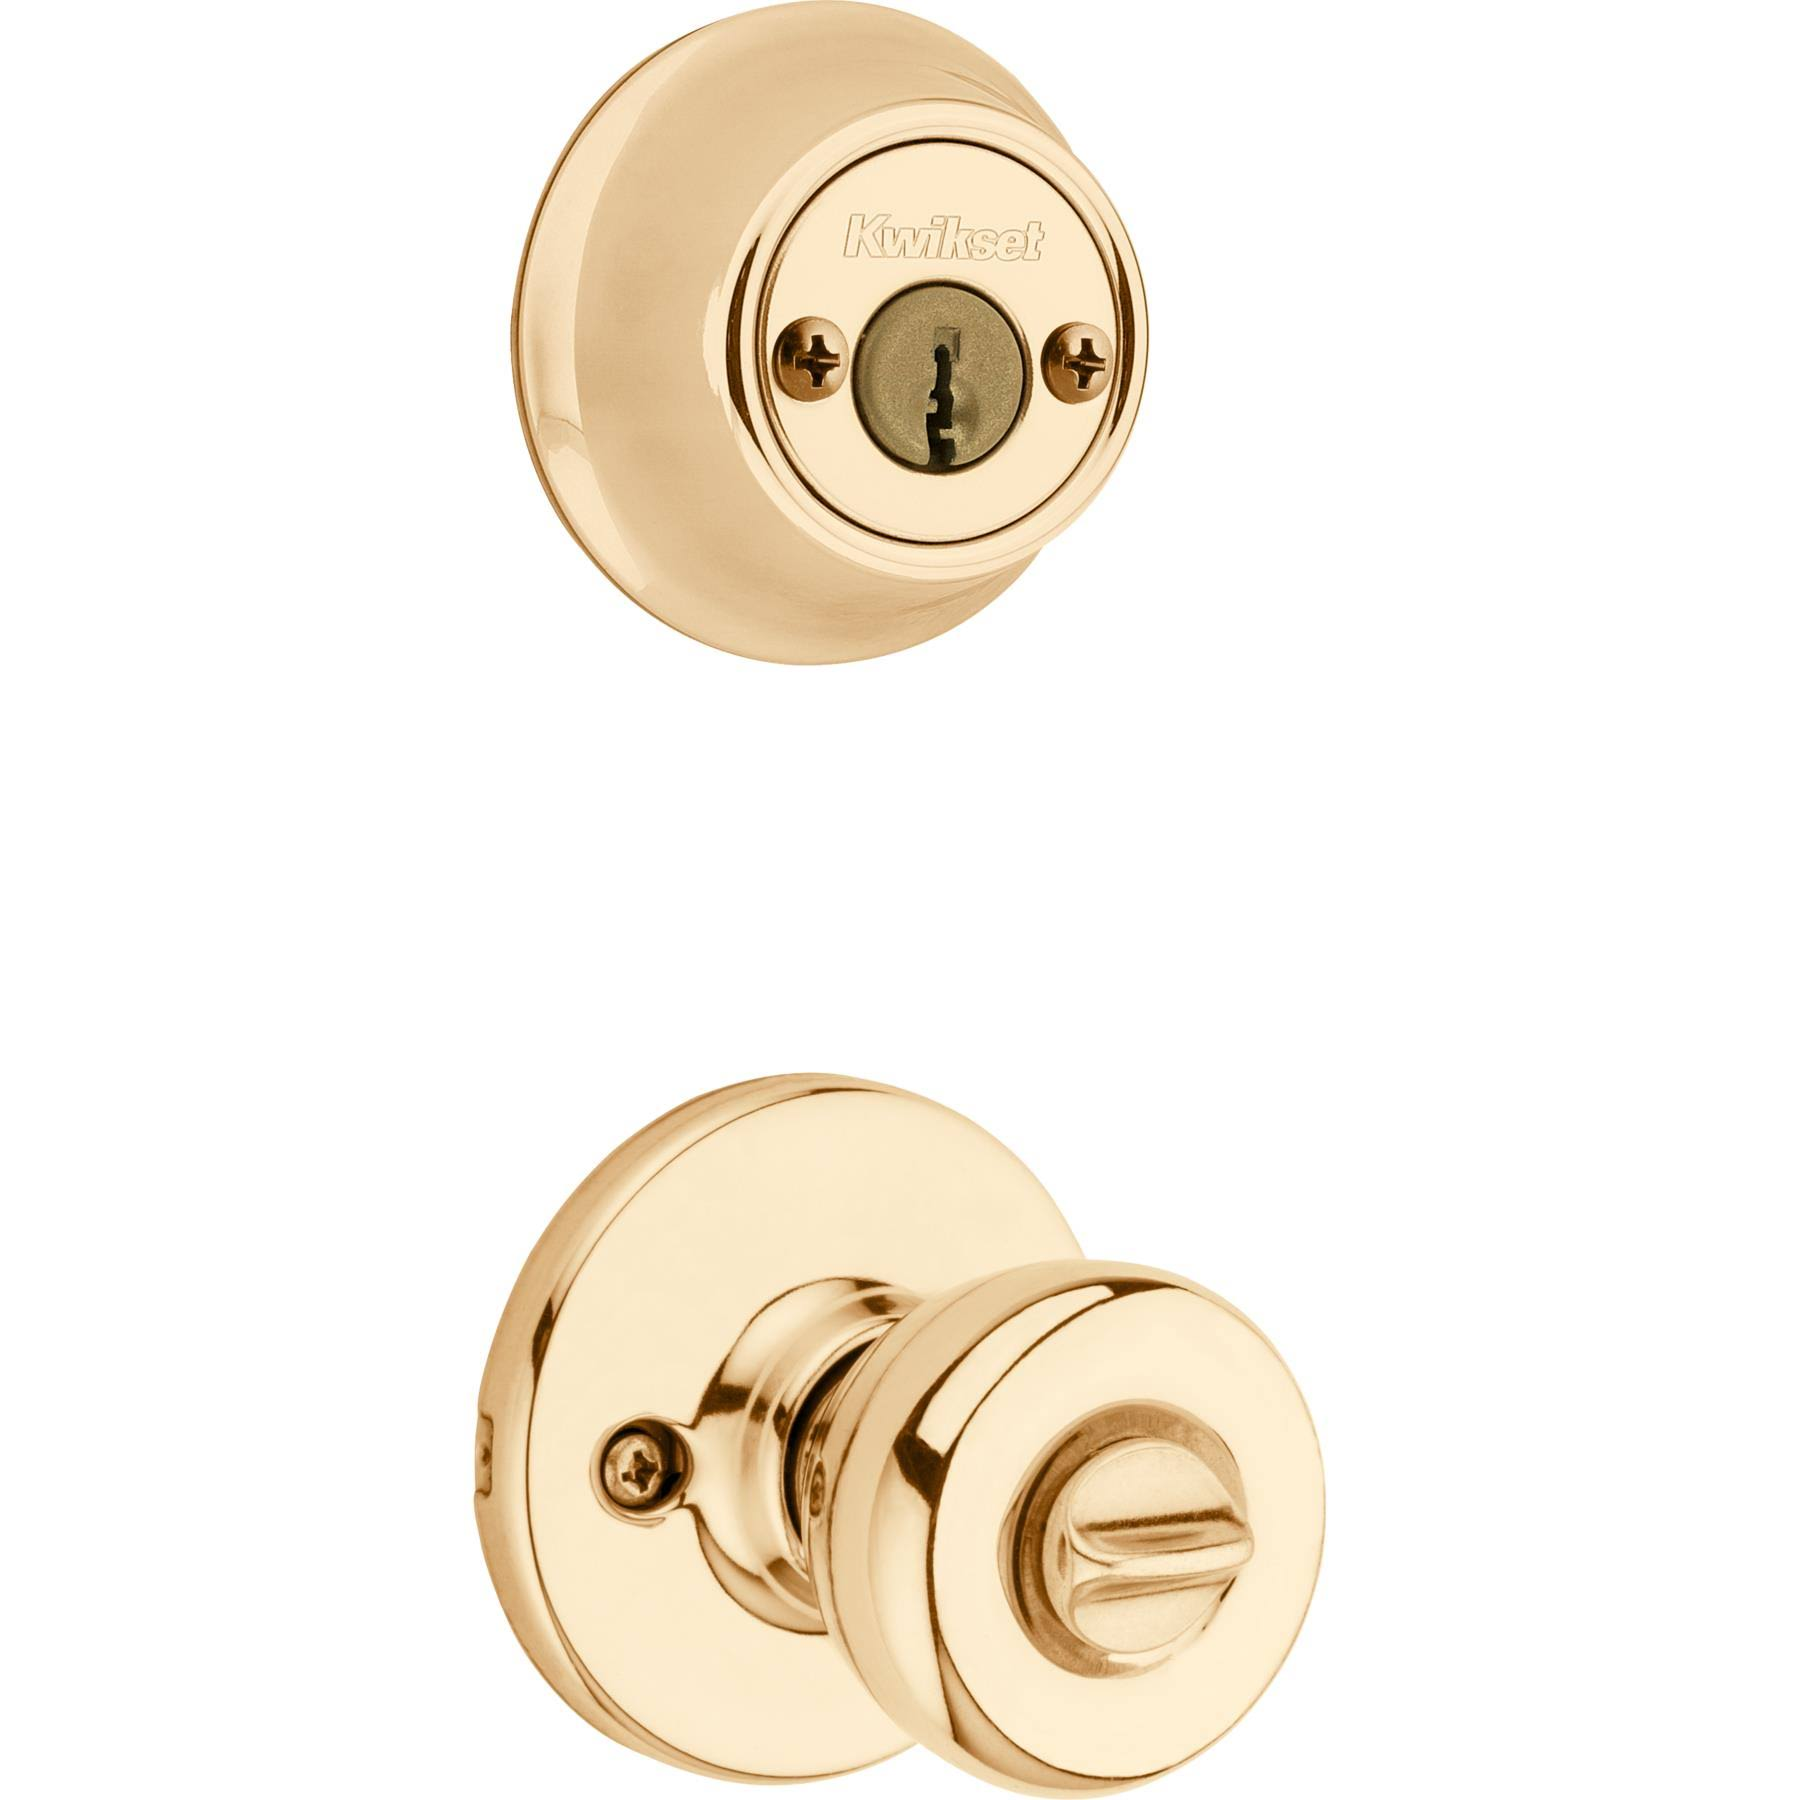 Kwikset 695 Tylo Entry Knob And Double Cylinder Deadbolt Combo Pack - Polished Brass